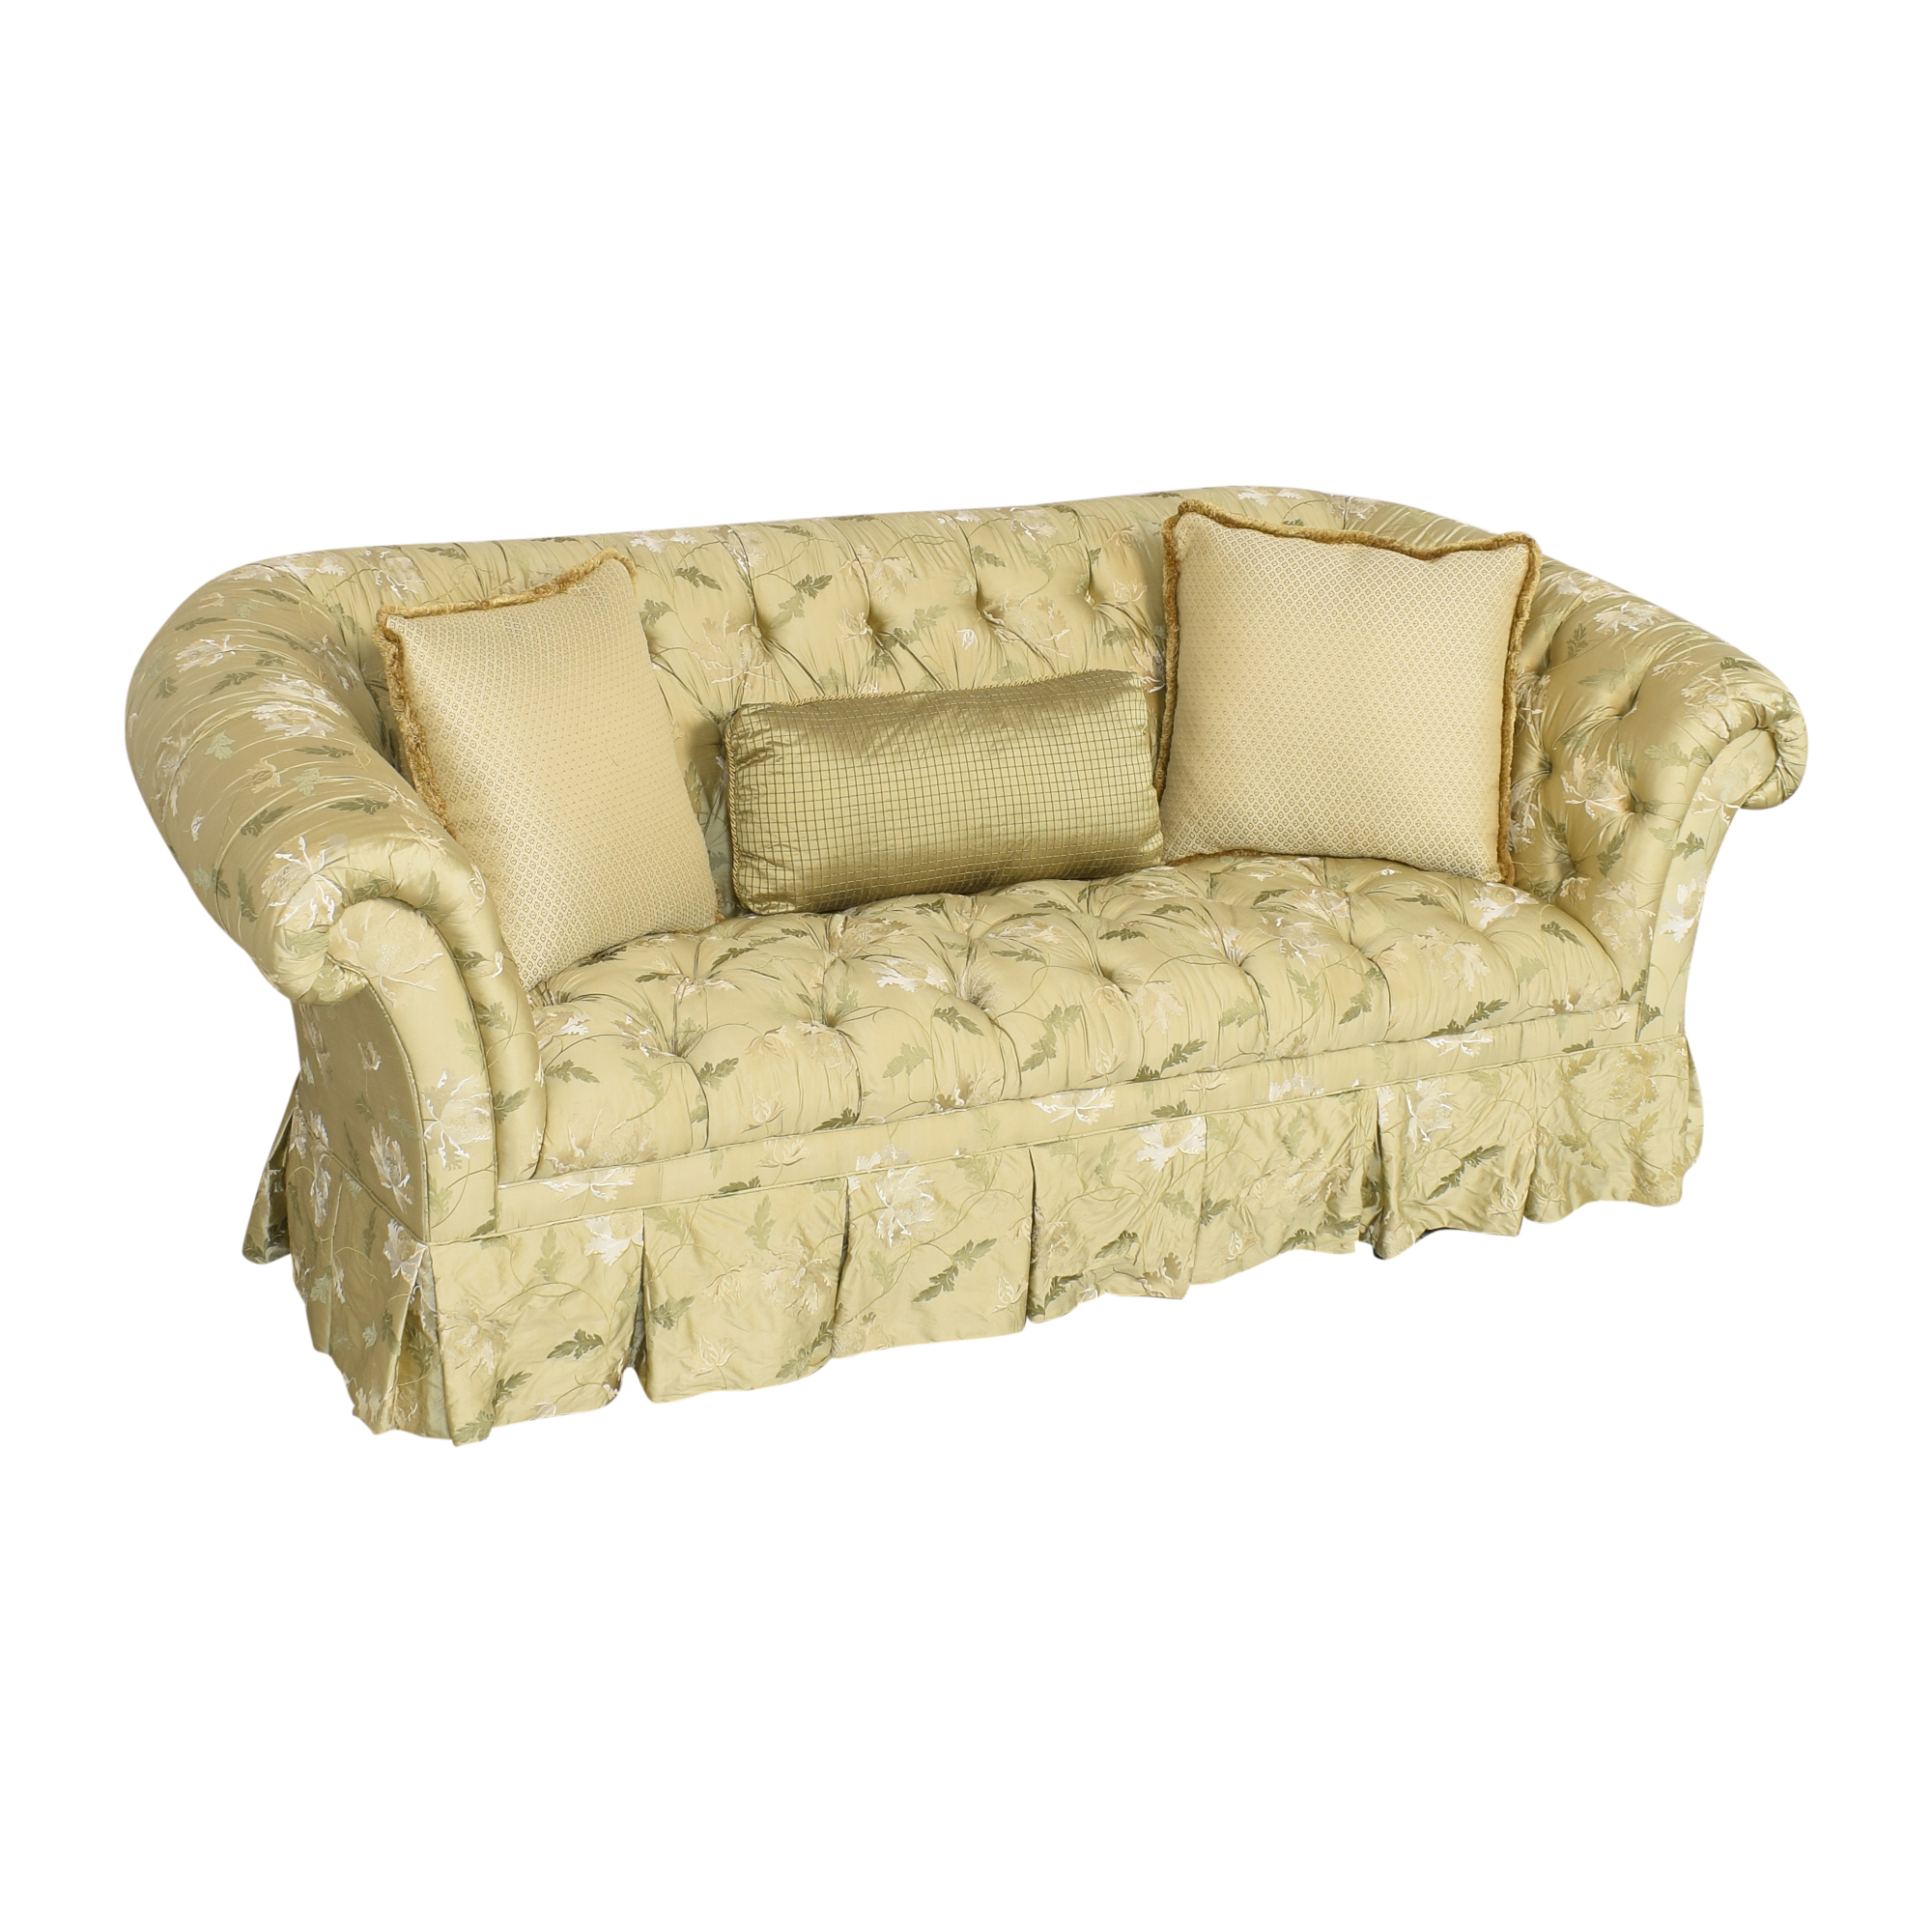 Lillian August Lillian August Chesterfield Floral Sofa pa